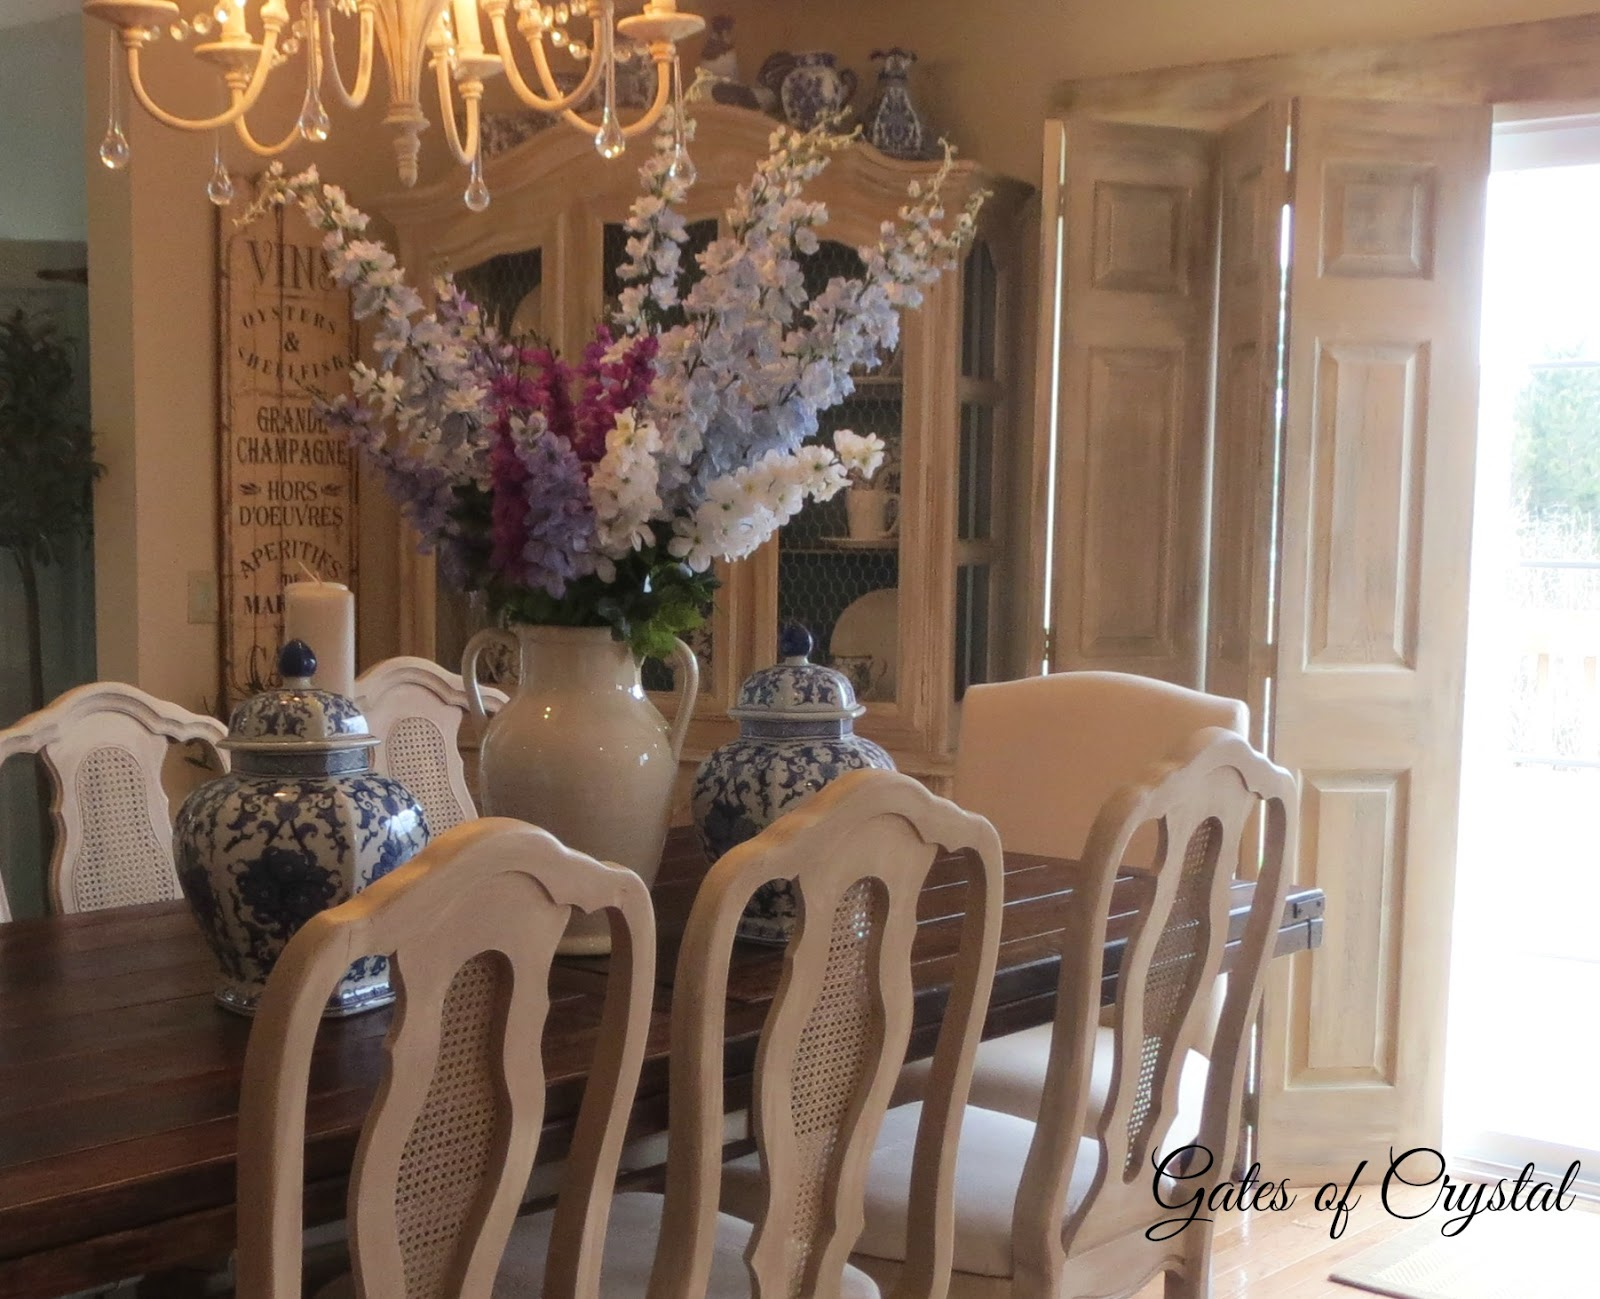 Gates of Crystal: New Dining Room Chairs